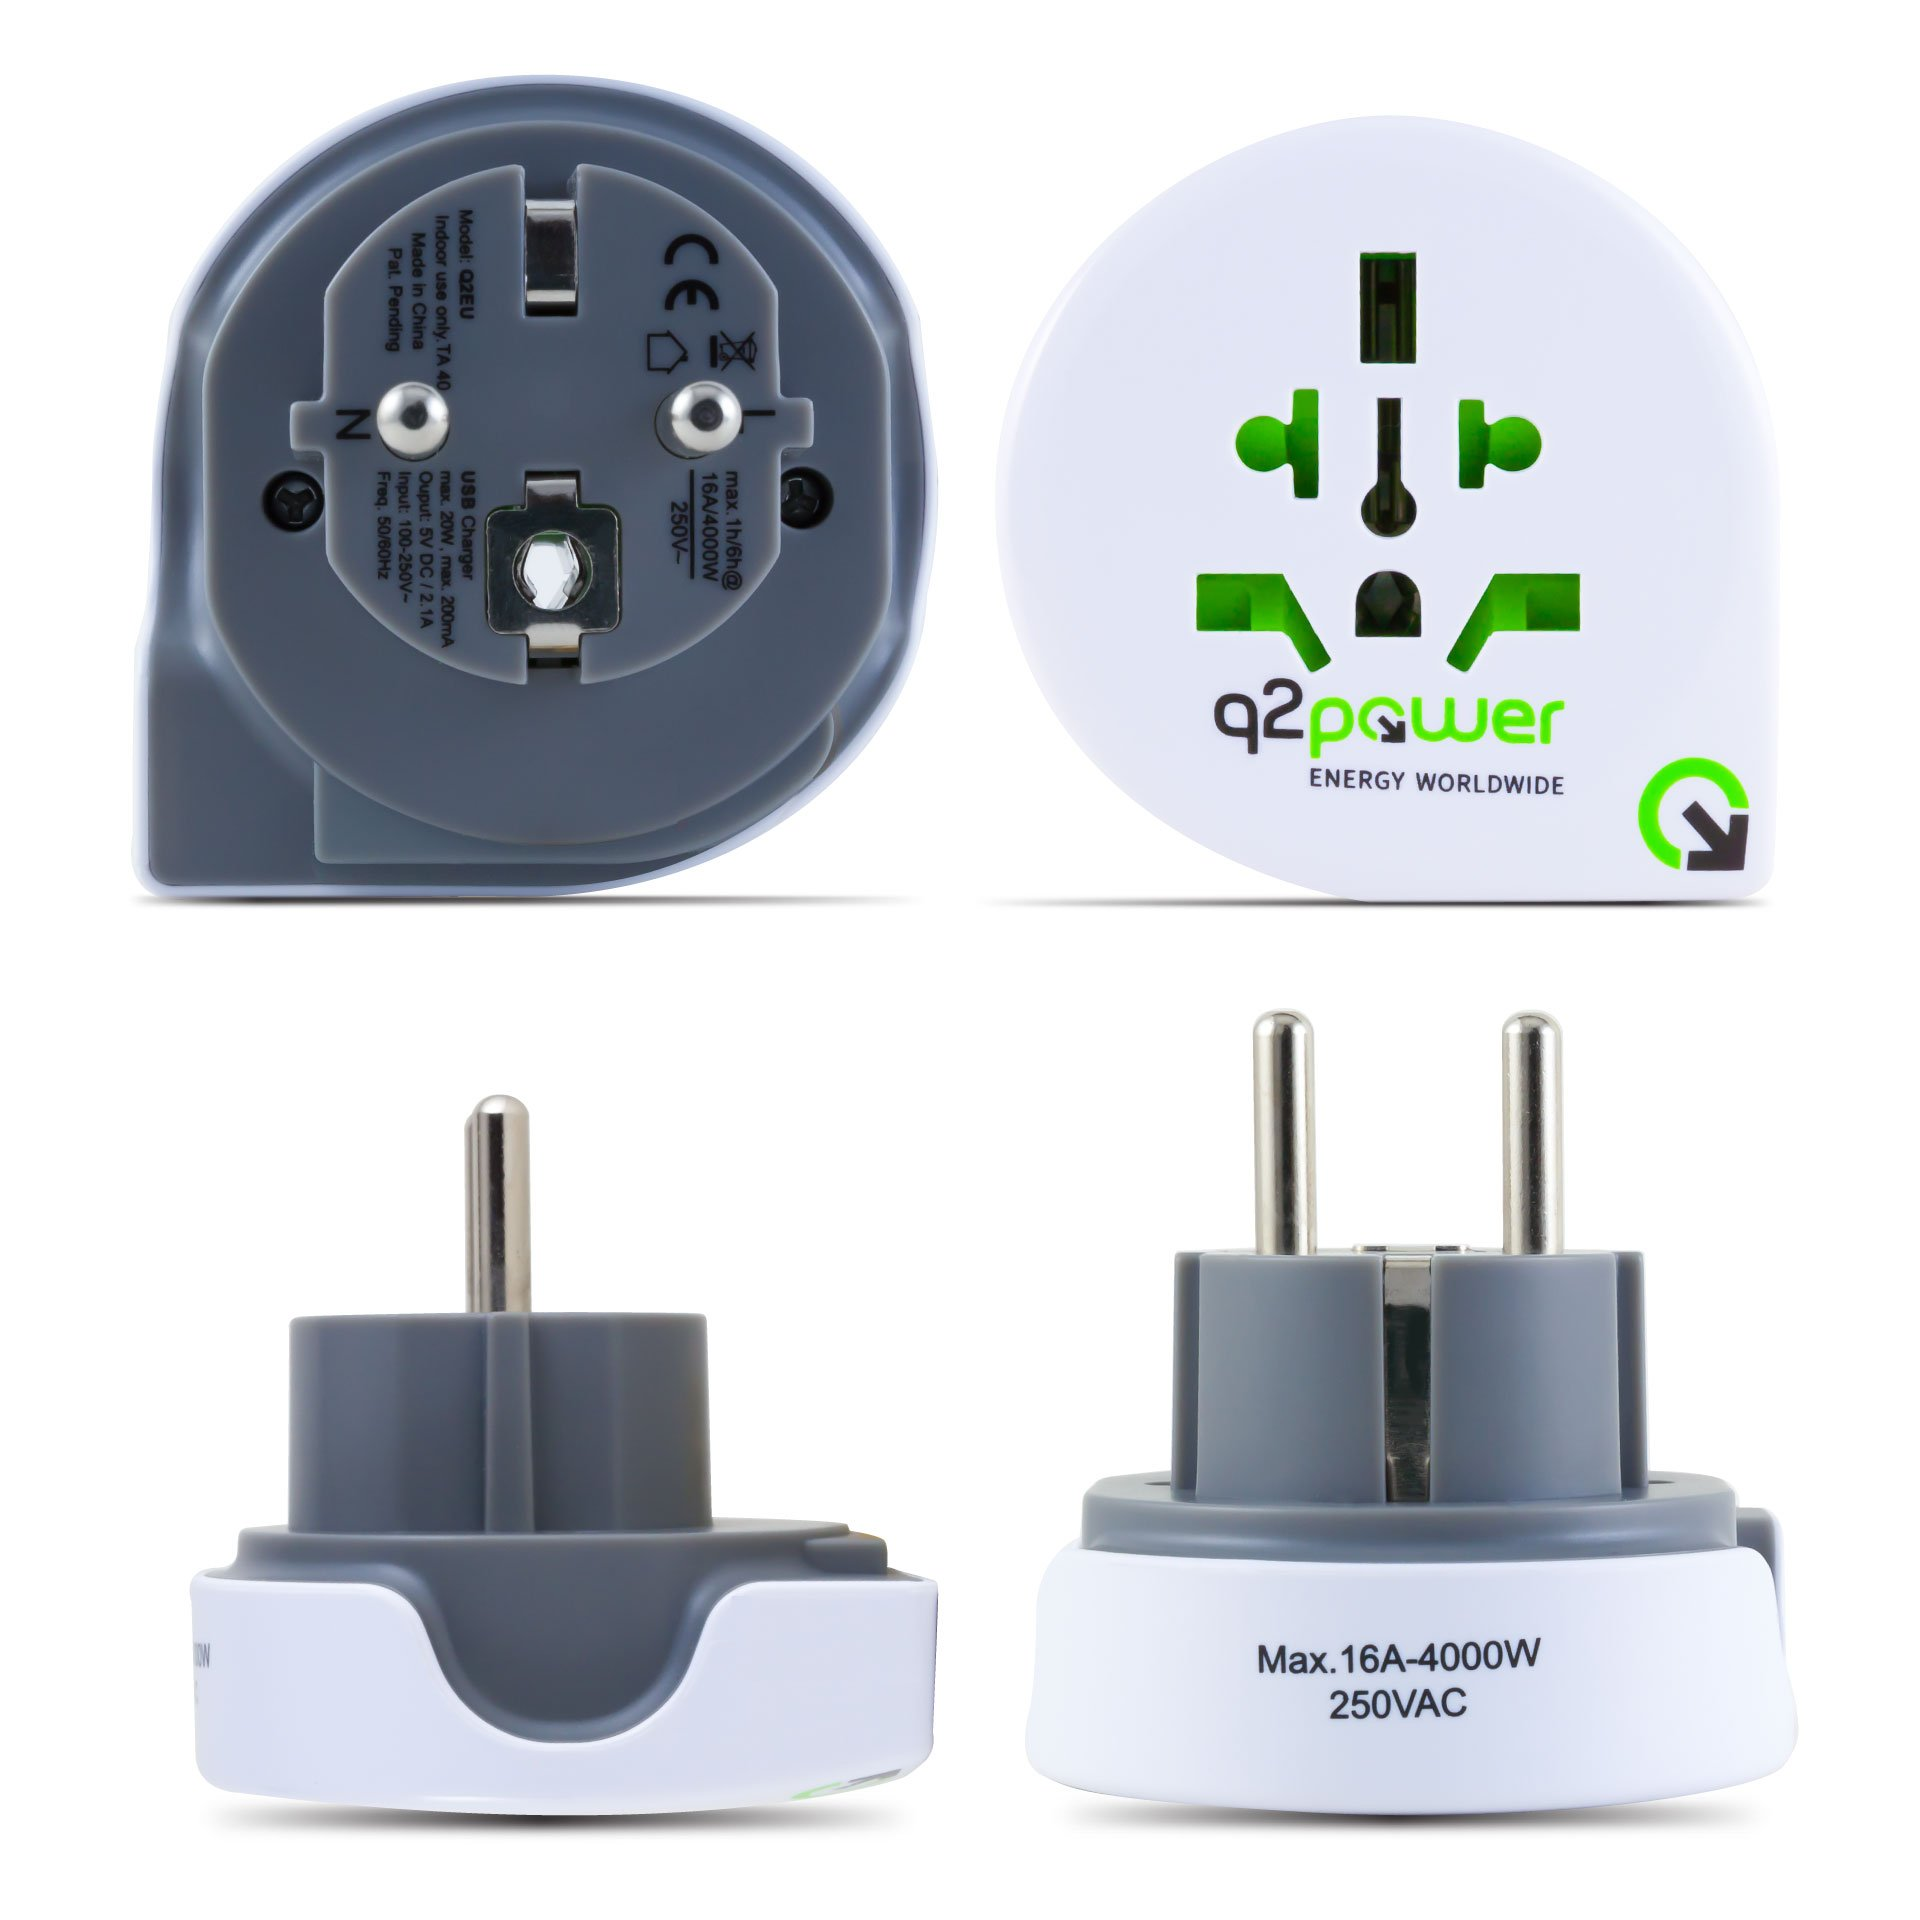 World to Europe Travel Adapter by Q2Power | For Type F Schuko Outlets | Grounded & Safe | Works with Laptops, Computers, Smartphone Chargers, Portable Devices | Perfect for International Trips by q2power (Image #5)